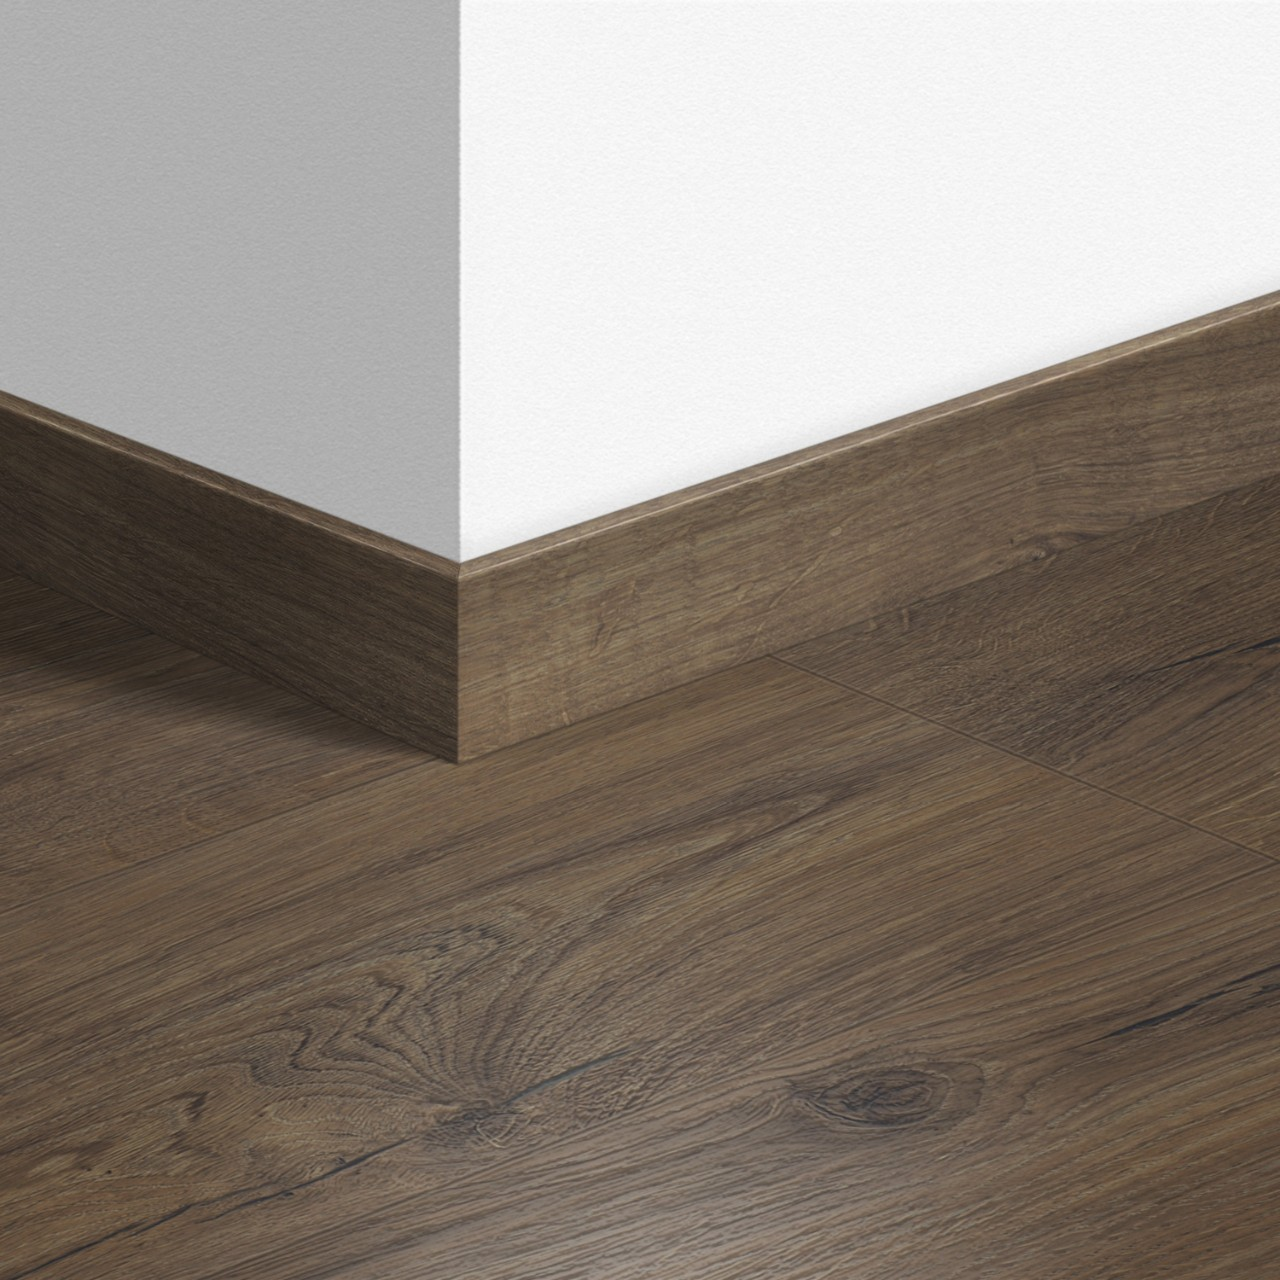 QSSK Laminate Accessories Virginia oak brown QSSK01849